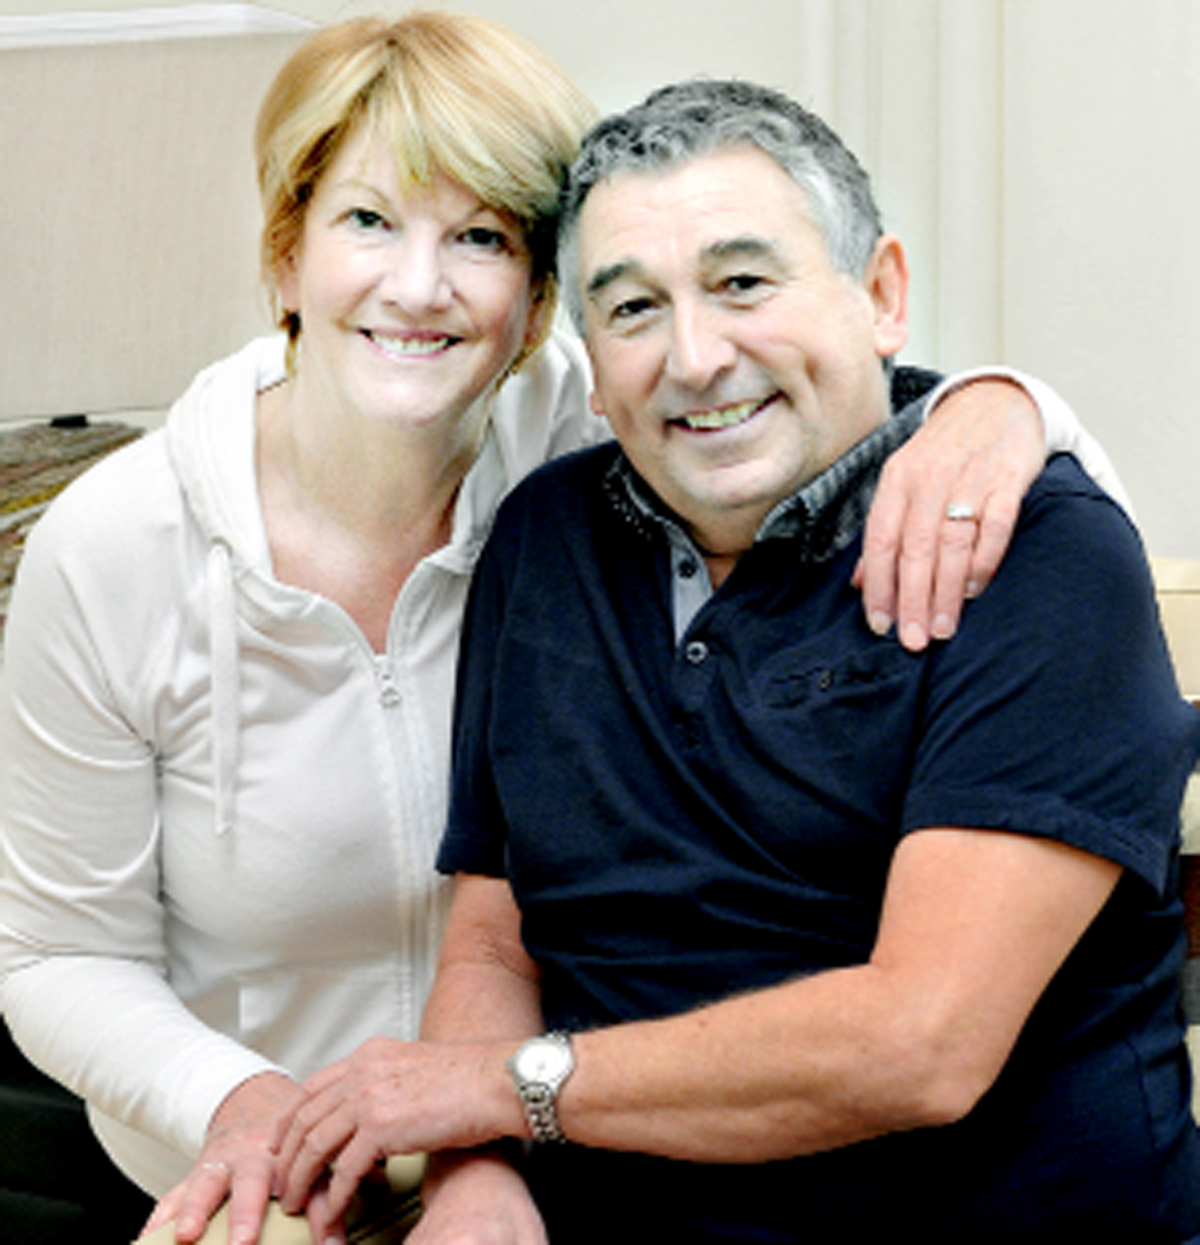 Ian Britton and his bride-to-be Eileen Bayliss